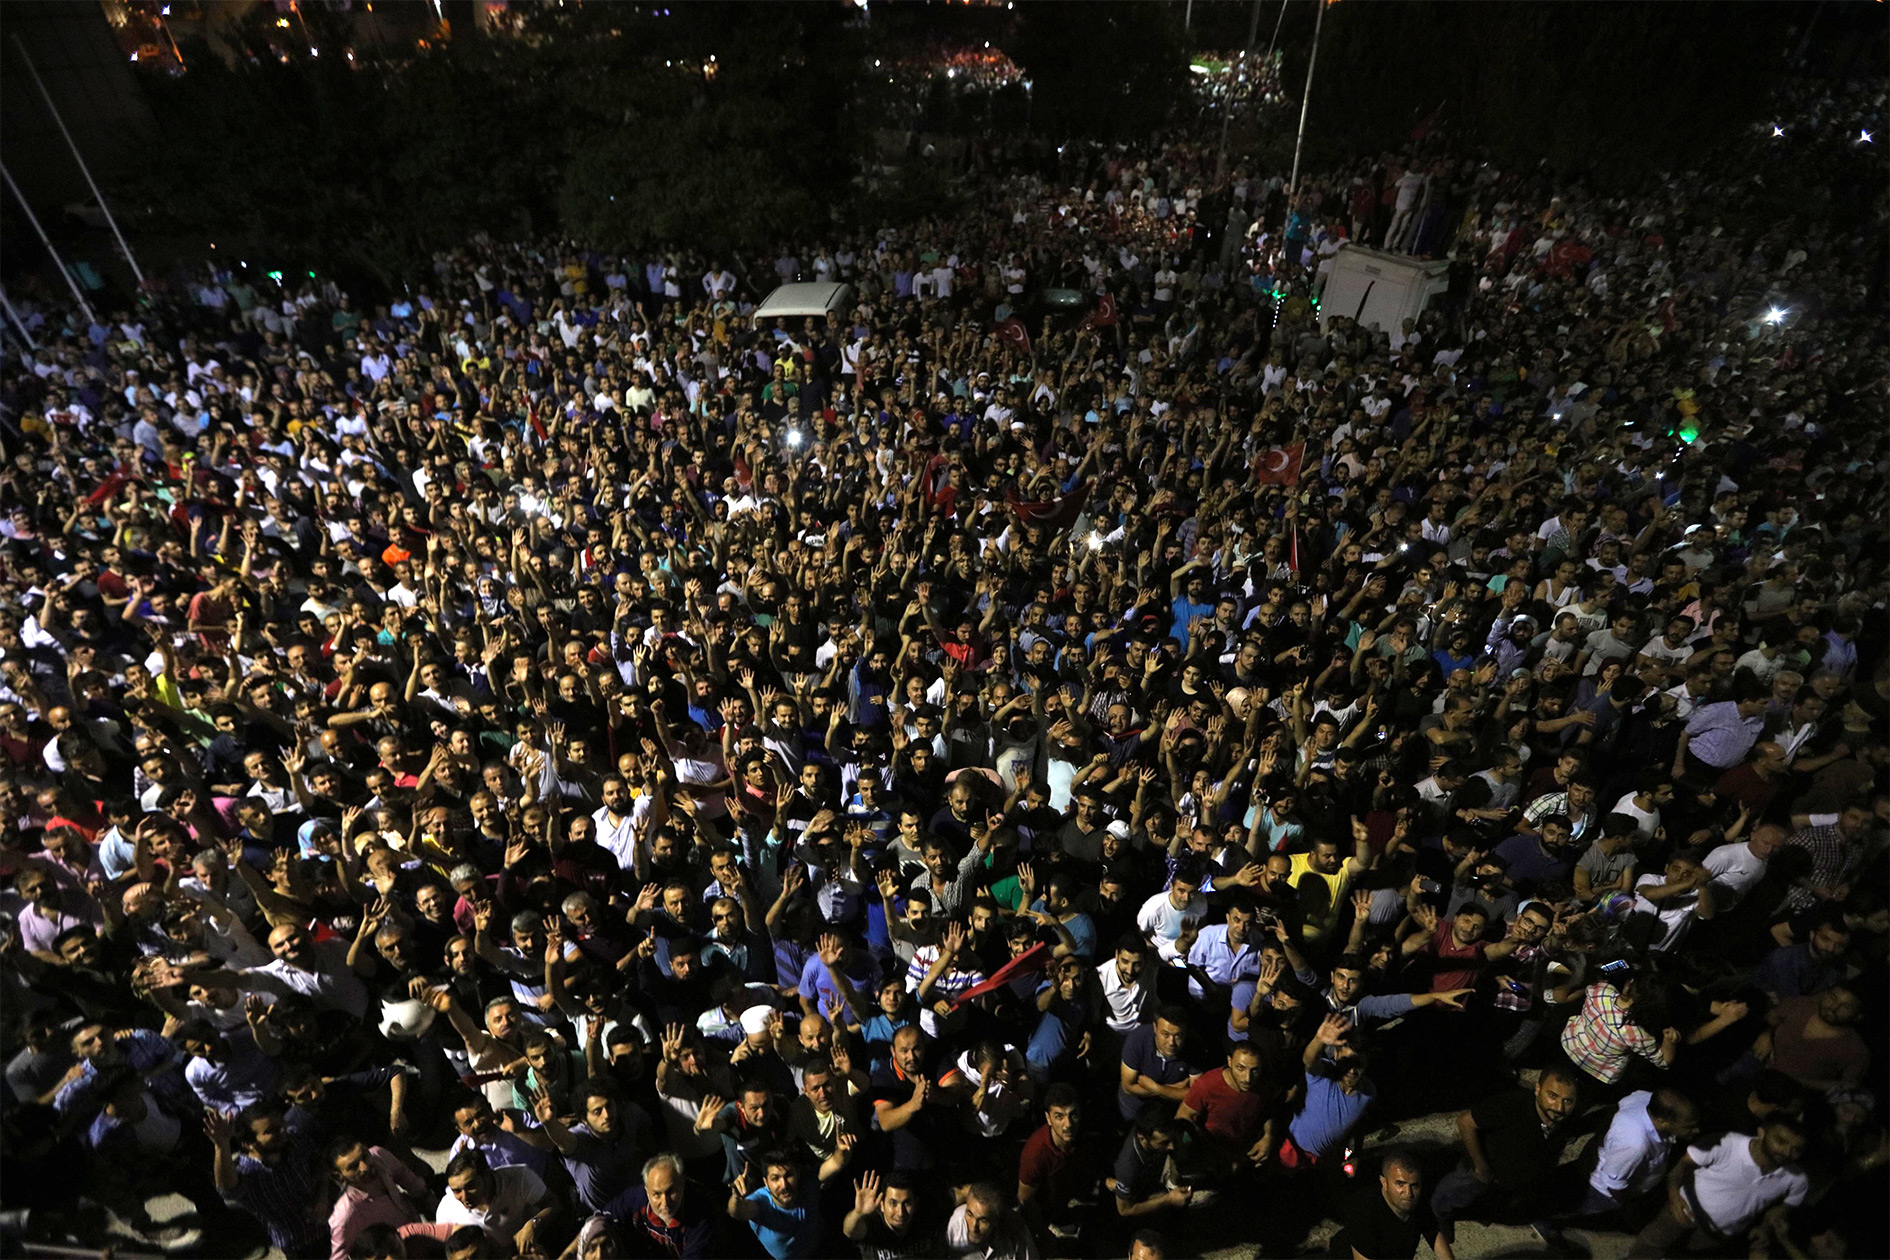 People demonstrate outside Ataturk international airport during an attempted coup in Istanbul, Turkey.